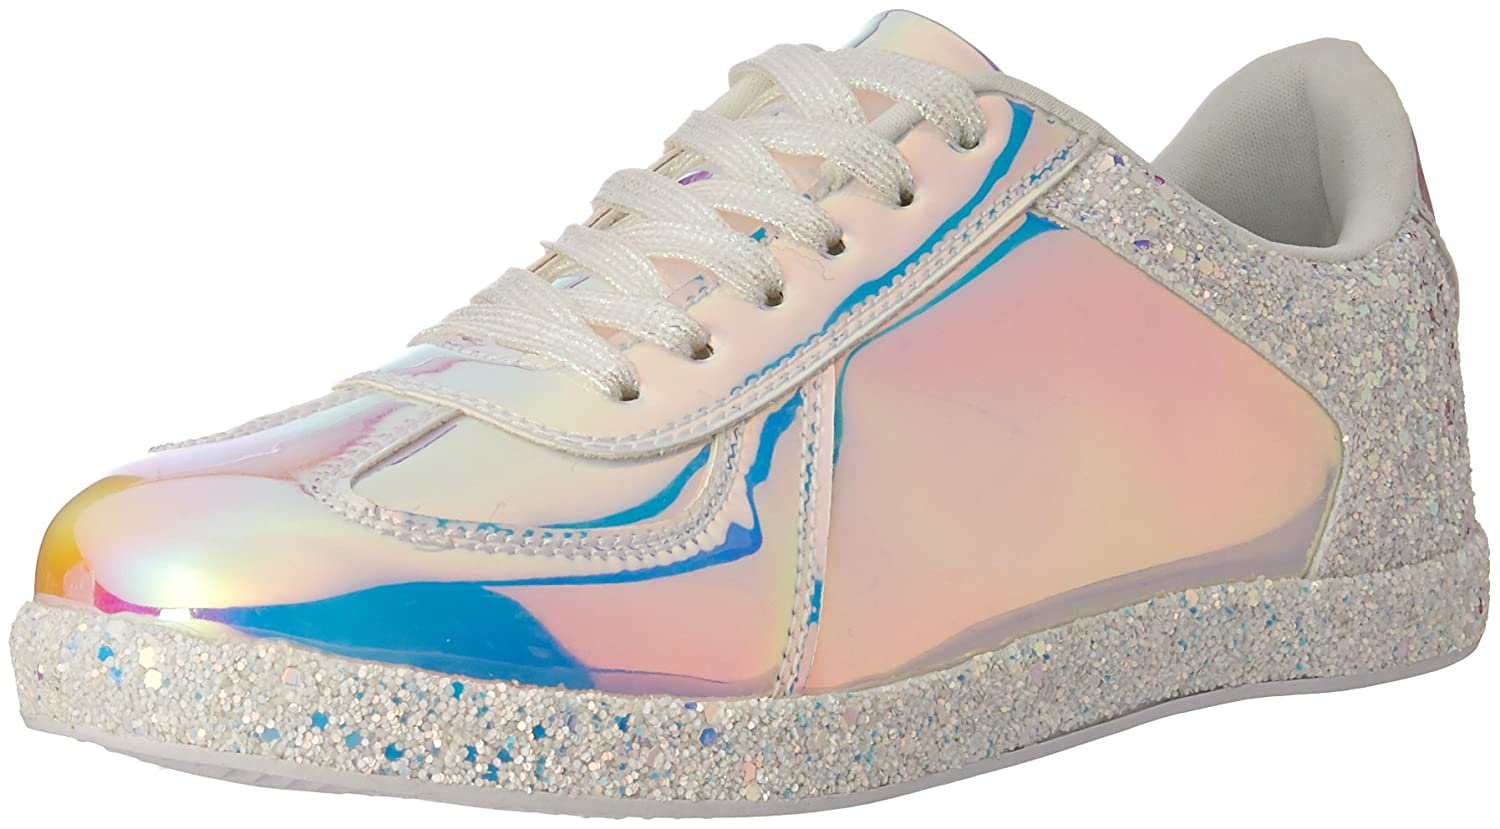 Qupid Women's Sneaker B079FVBB7P 10 B(M) US|White Hologram